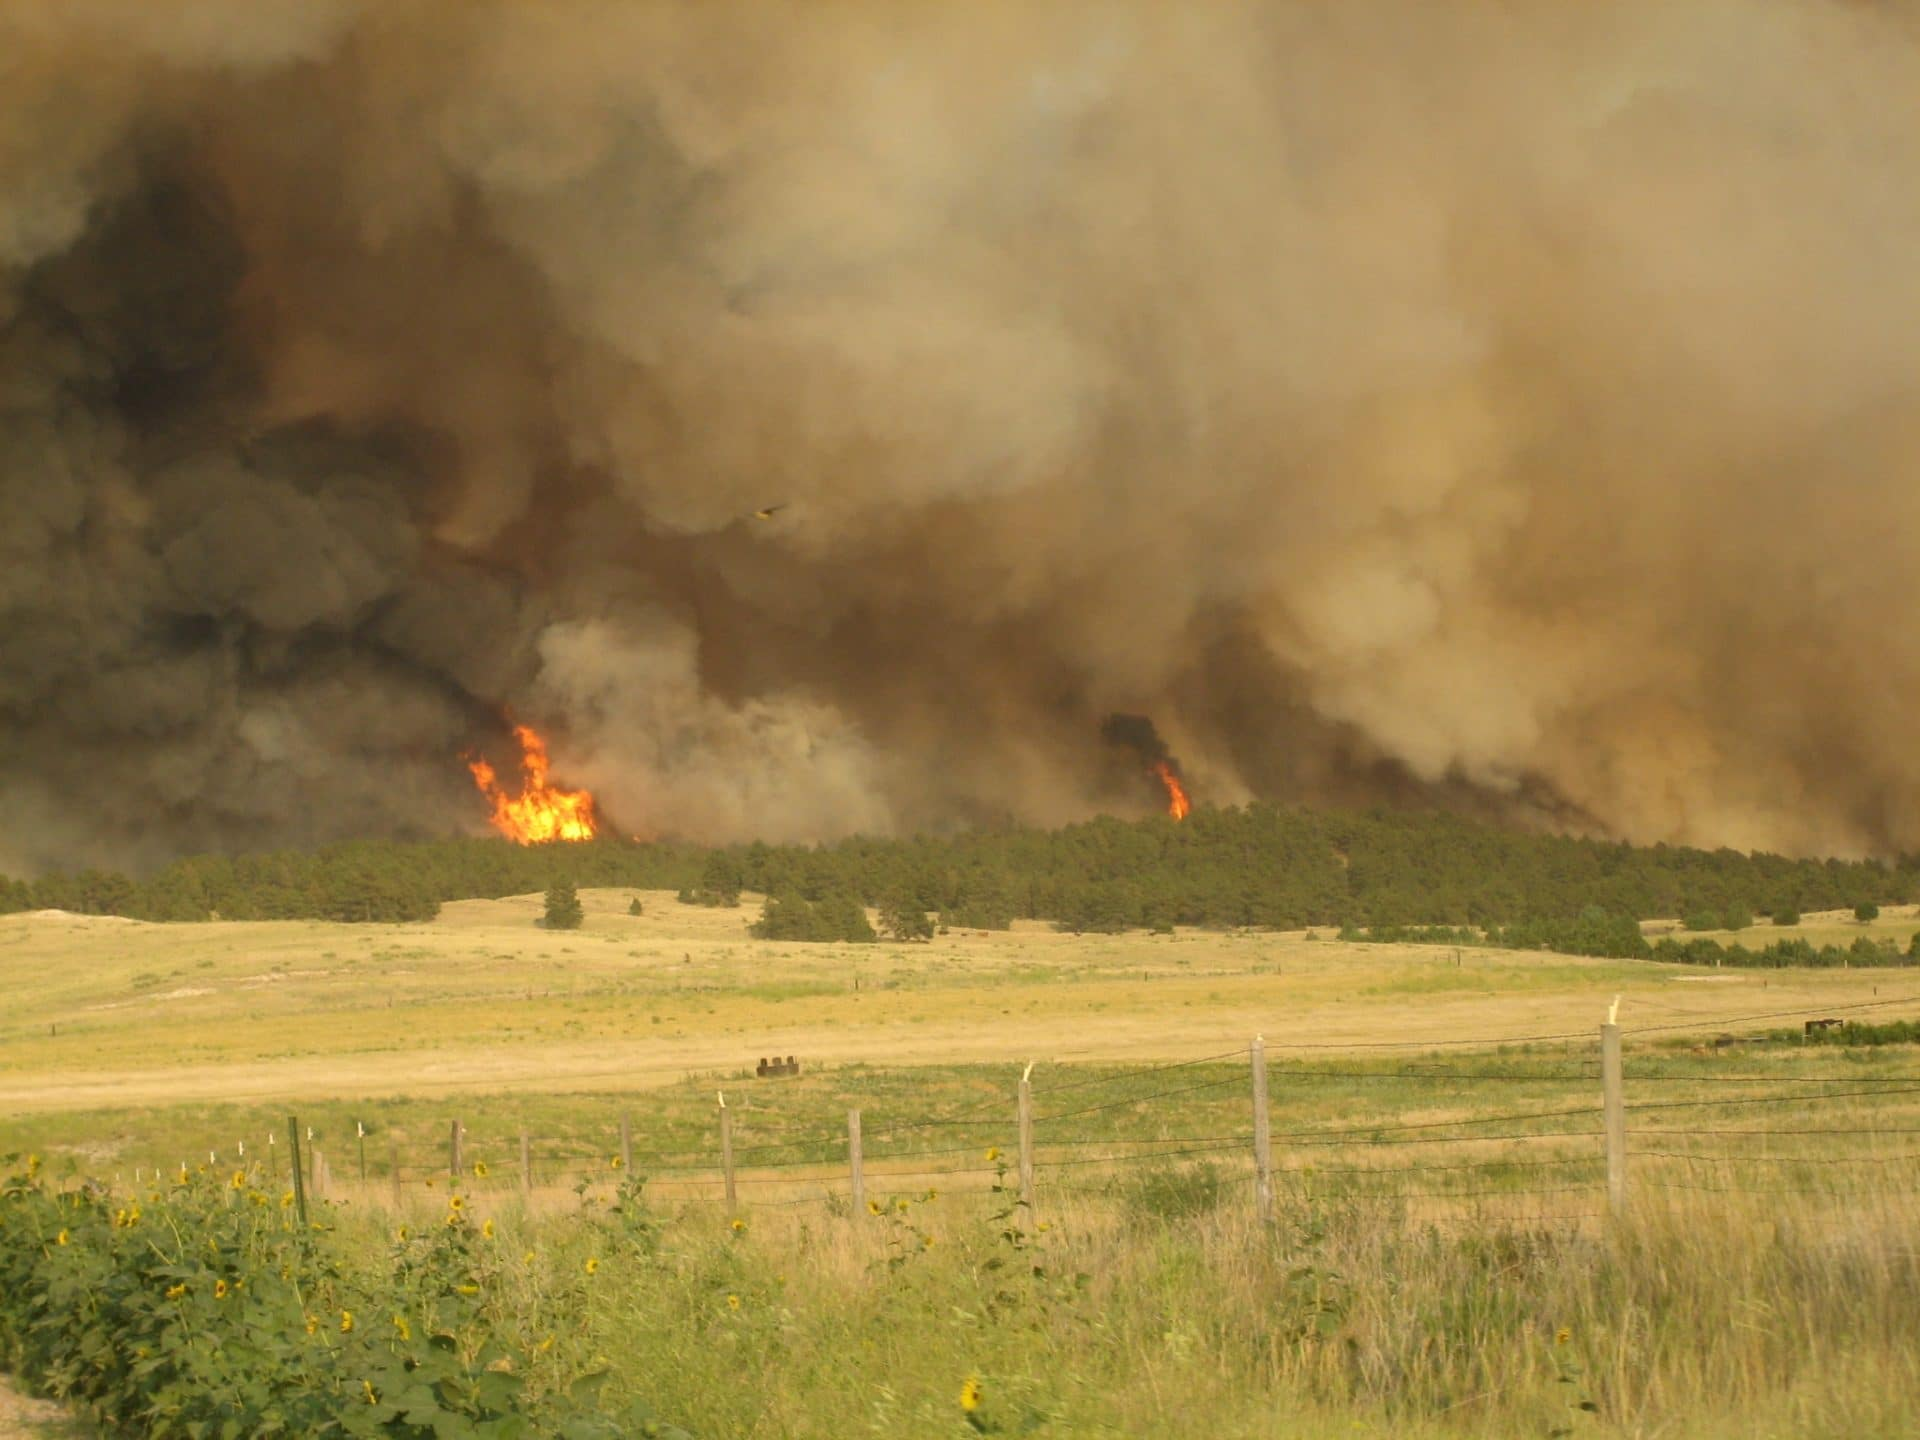 Spotted Tail Fire, only several hours old, rages northward toward the town of Chadron, Nebraska